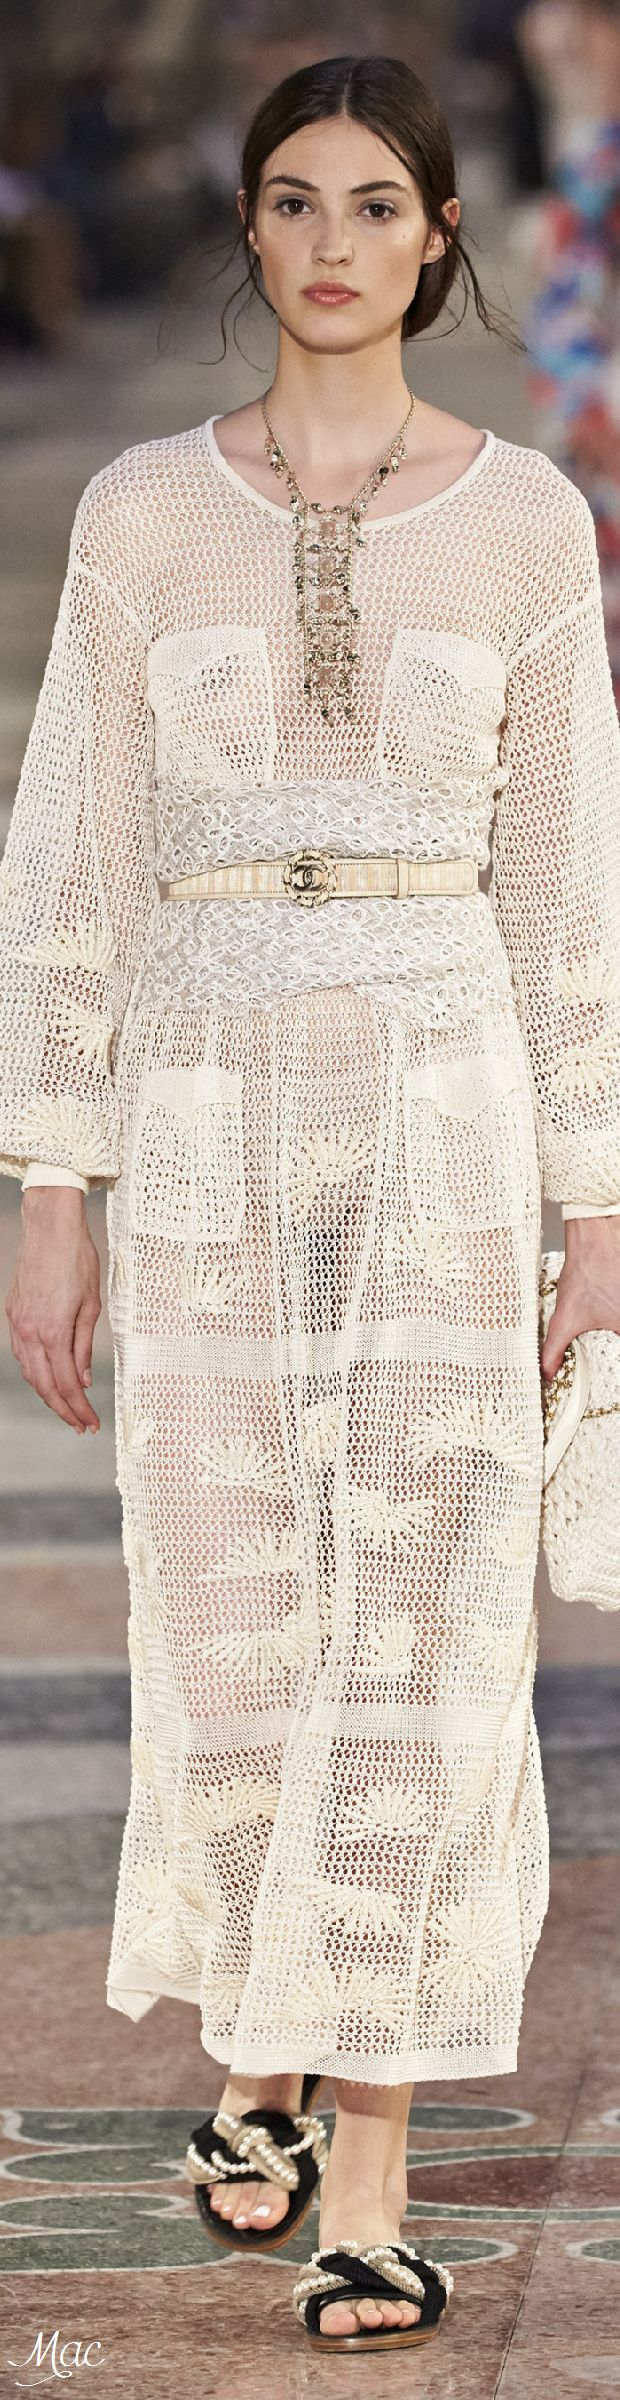 boho crochet maxi summer couture dress gypsy chic from Resort 2017 Chanel if only alice